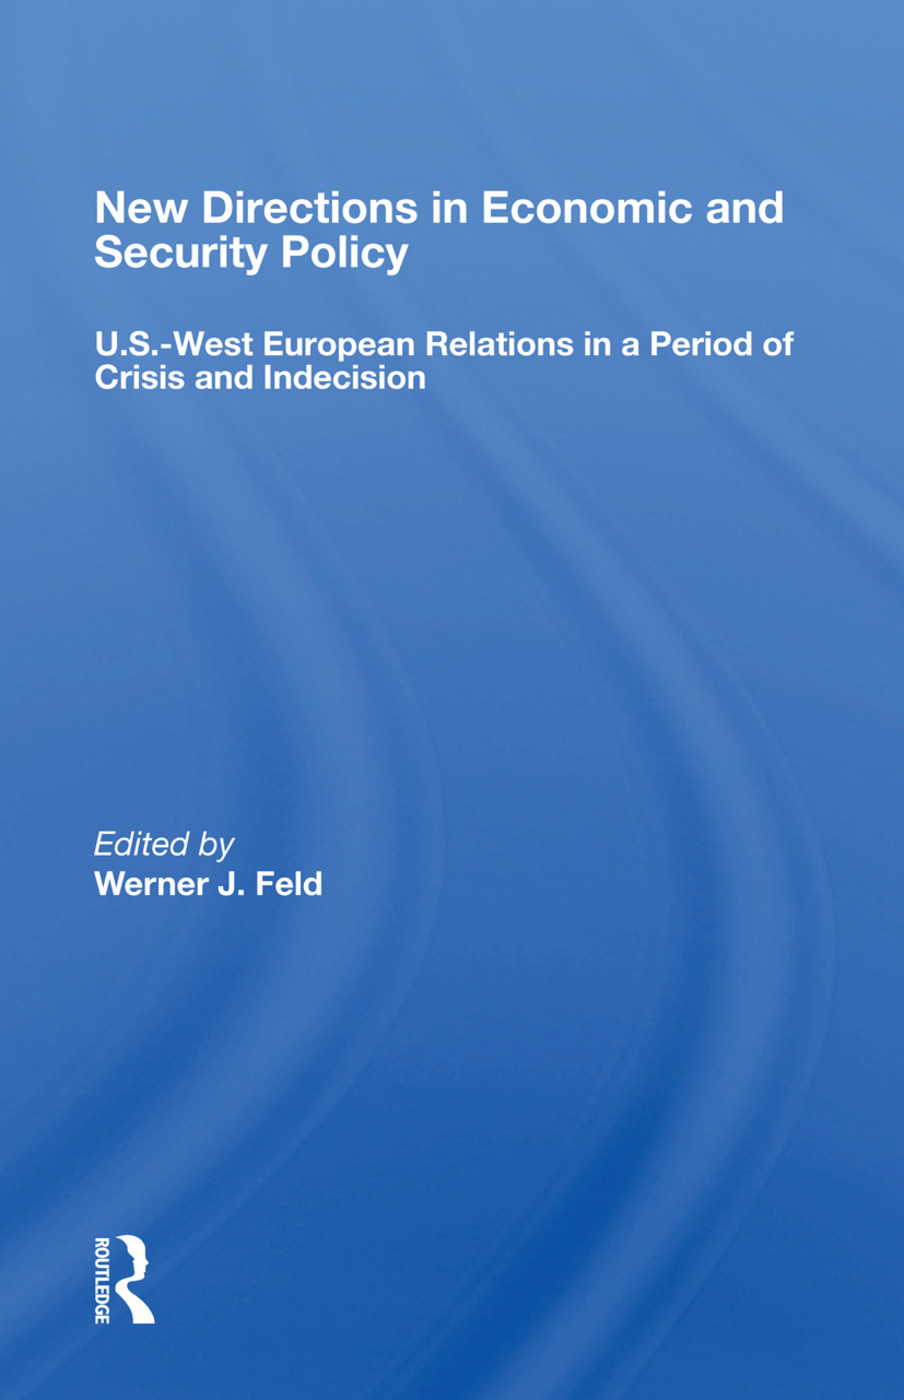 New Directions in Economic and Security Policy